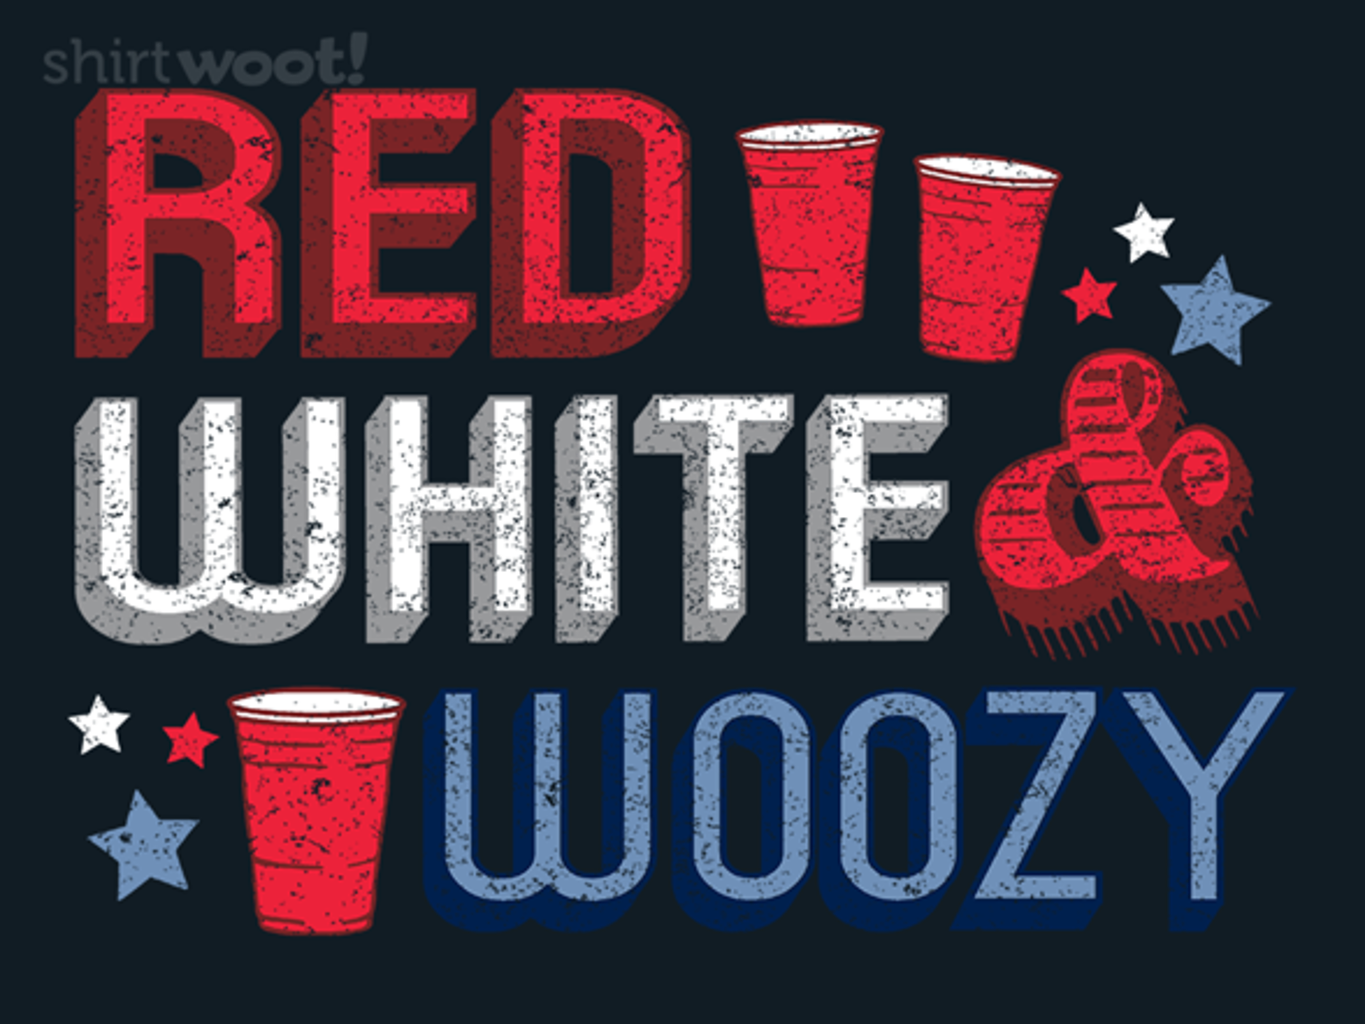 Woot!: Red, White, & Woozy